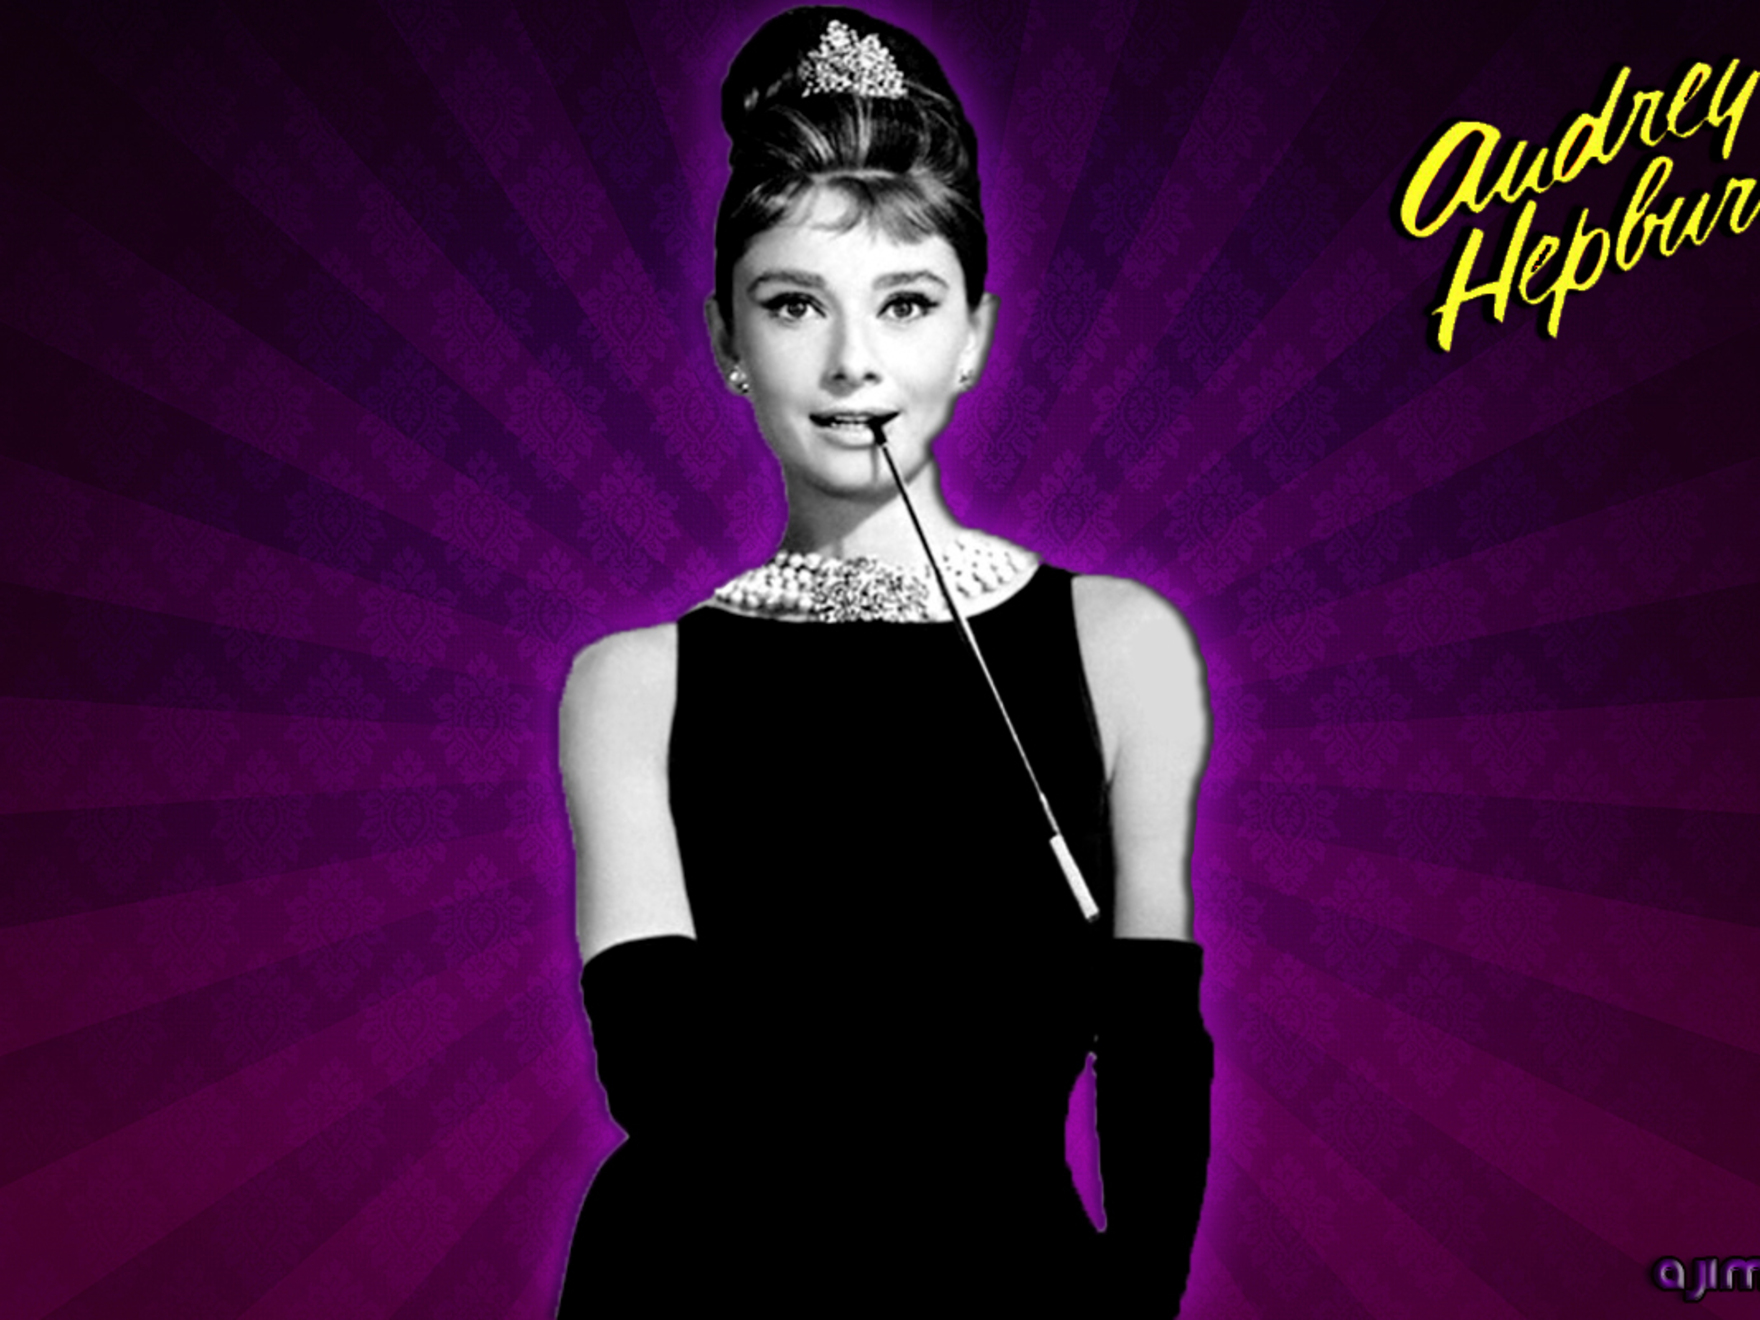 Audrey Hepburn Wallpapers Audrey Hepburn Backgrounds Audrey Hepburn 1760x1320